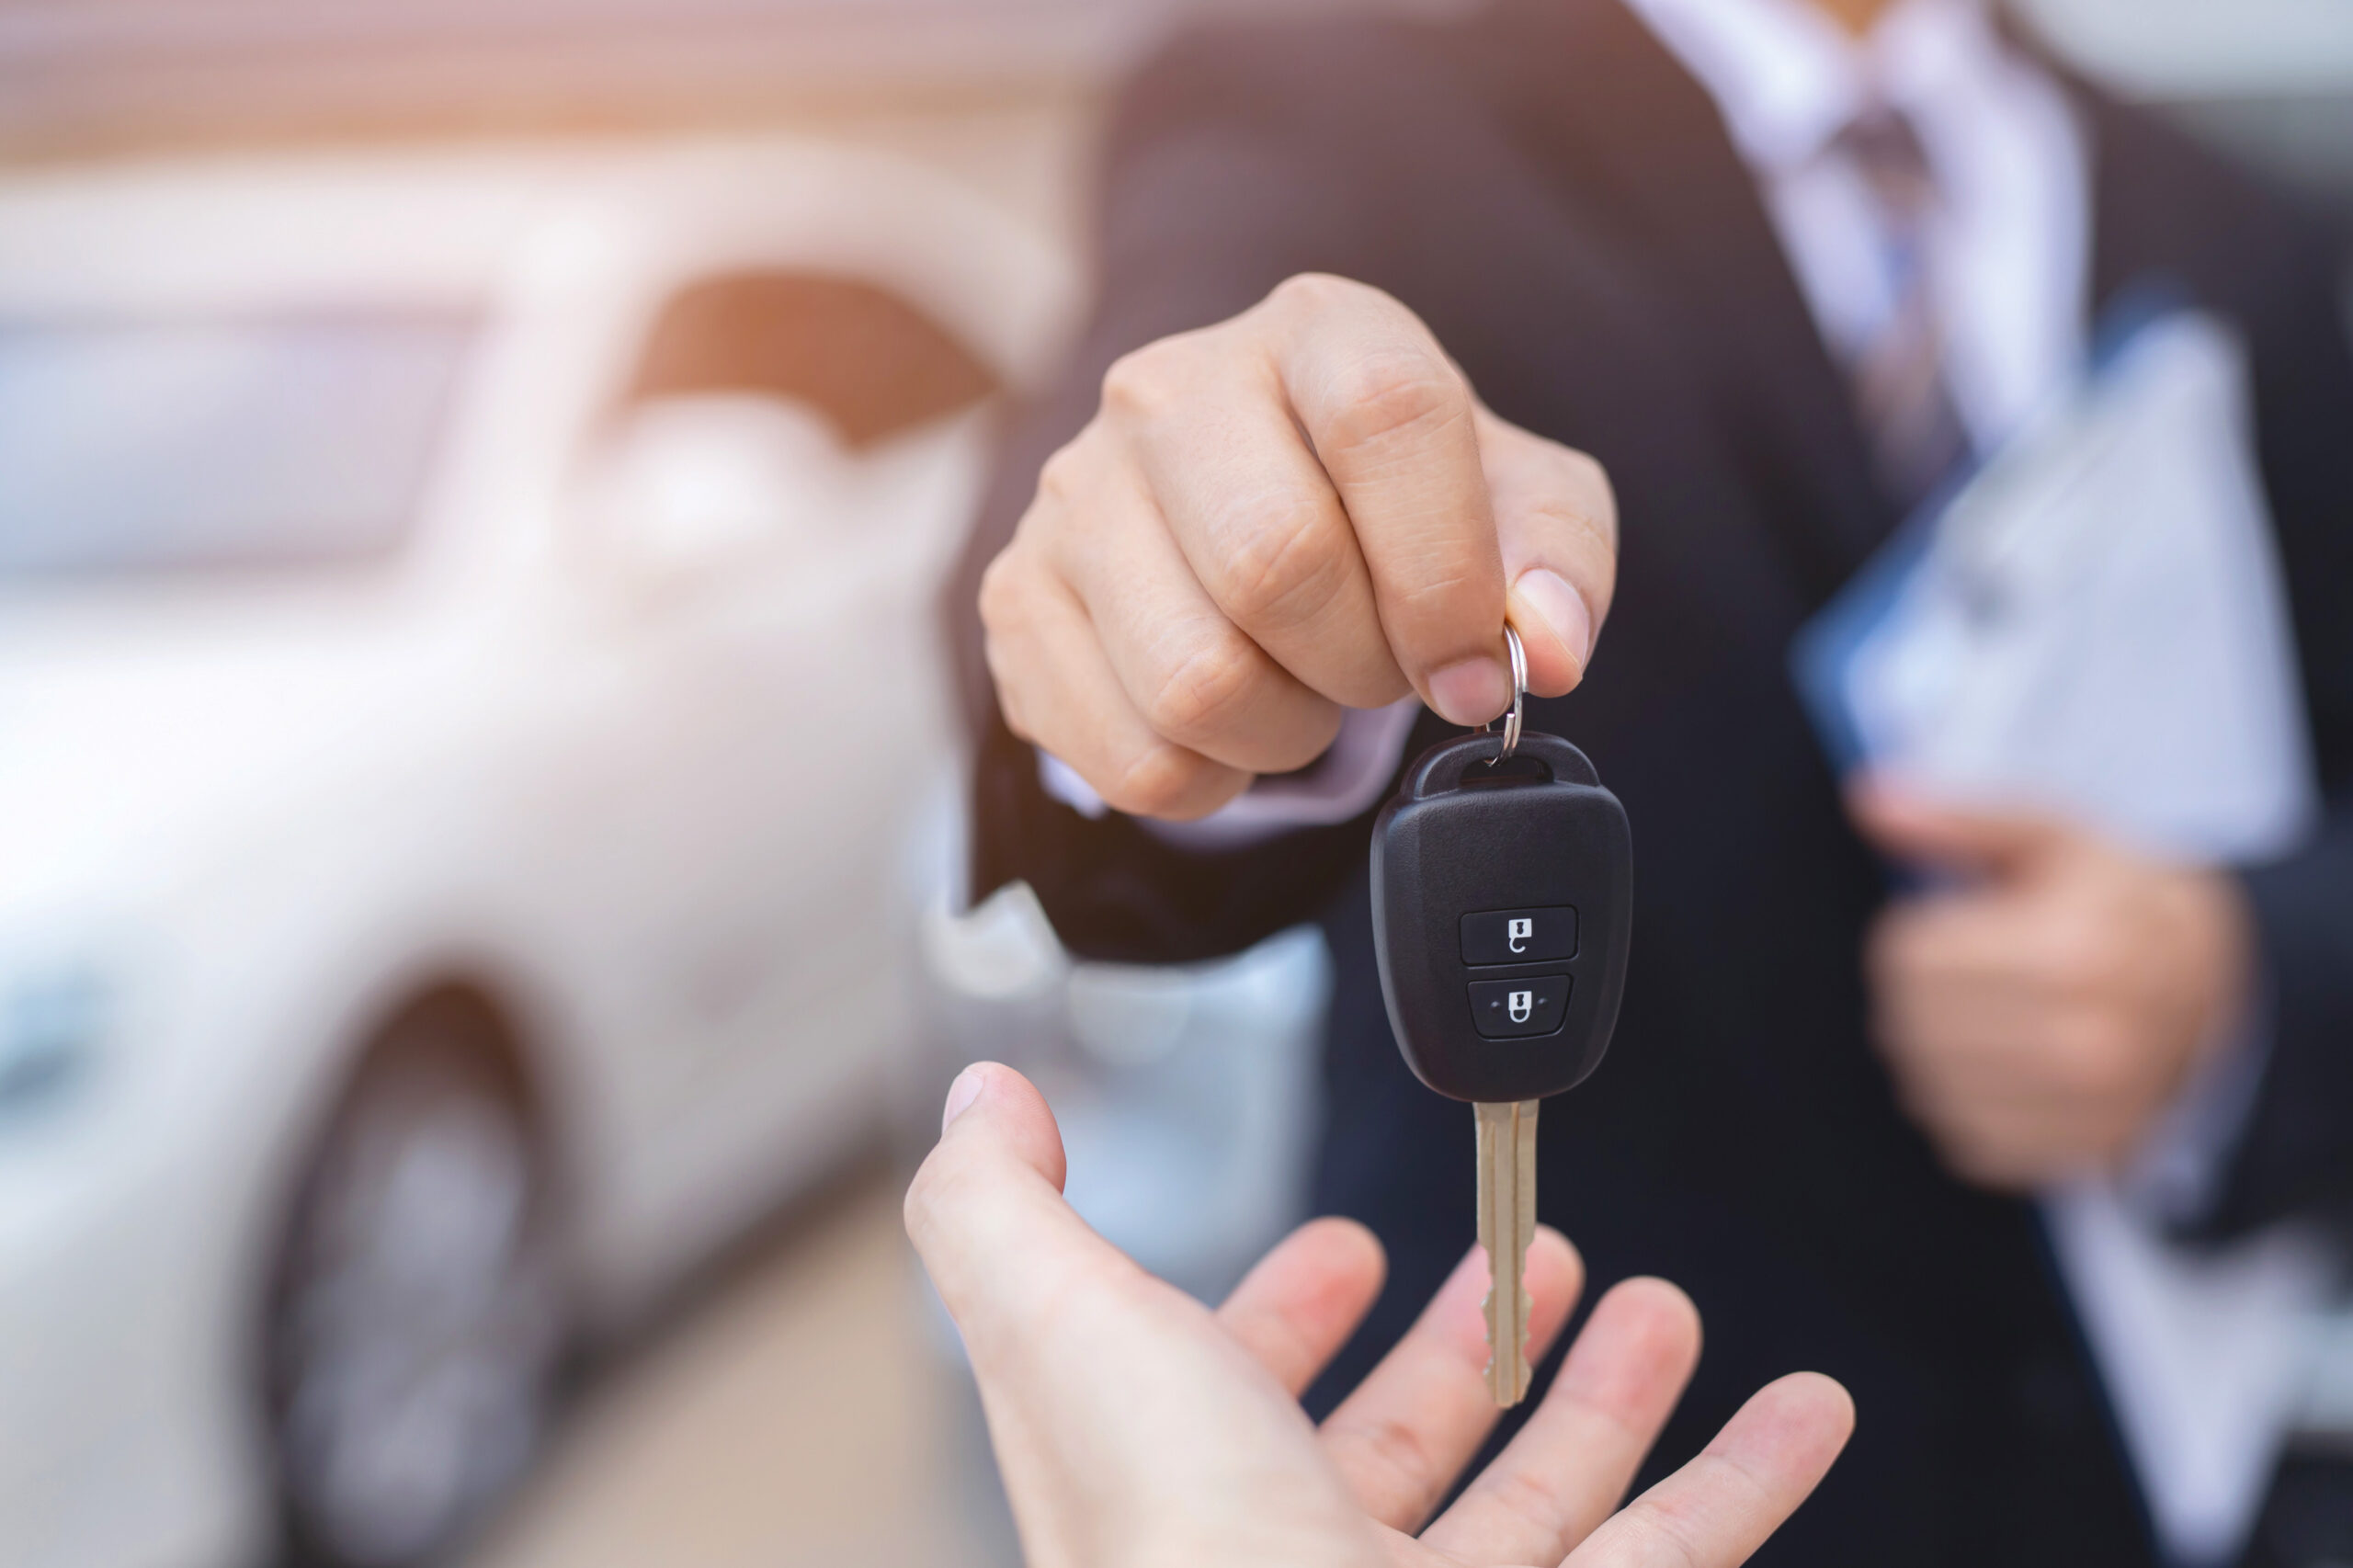 person holding car key